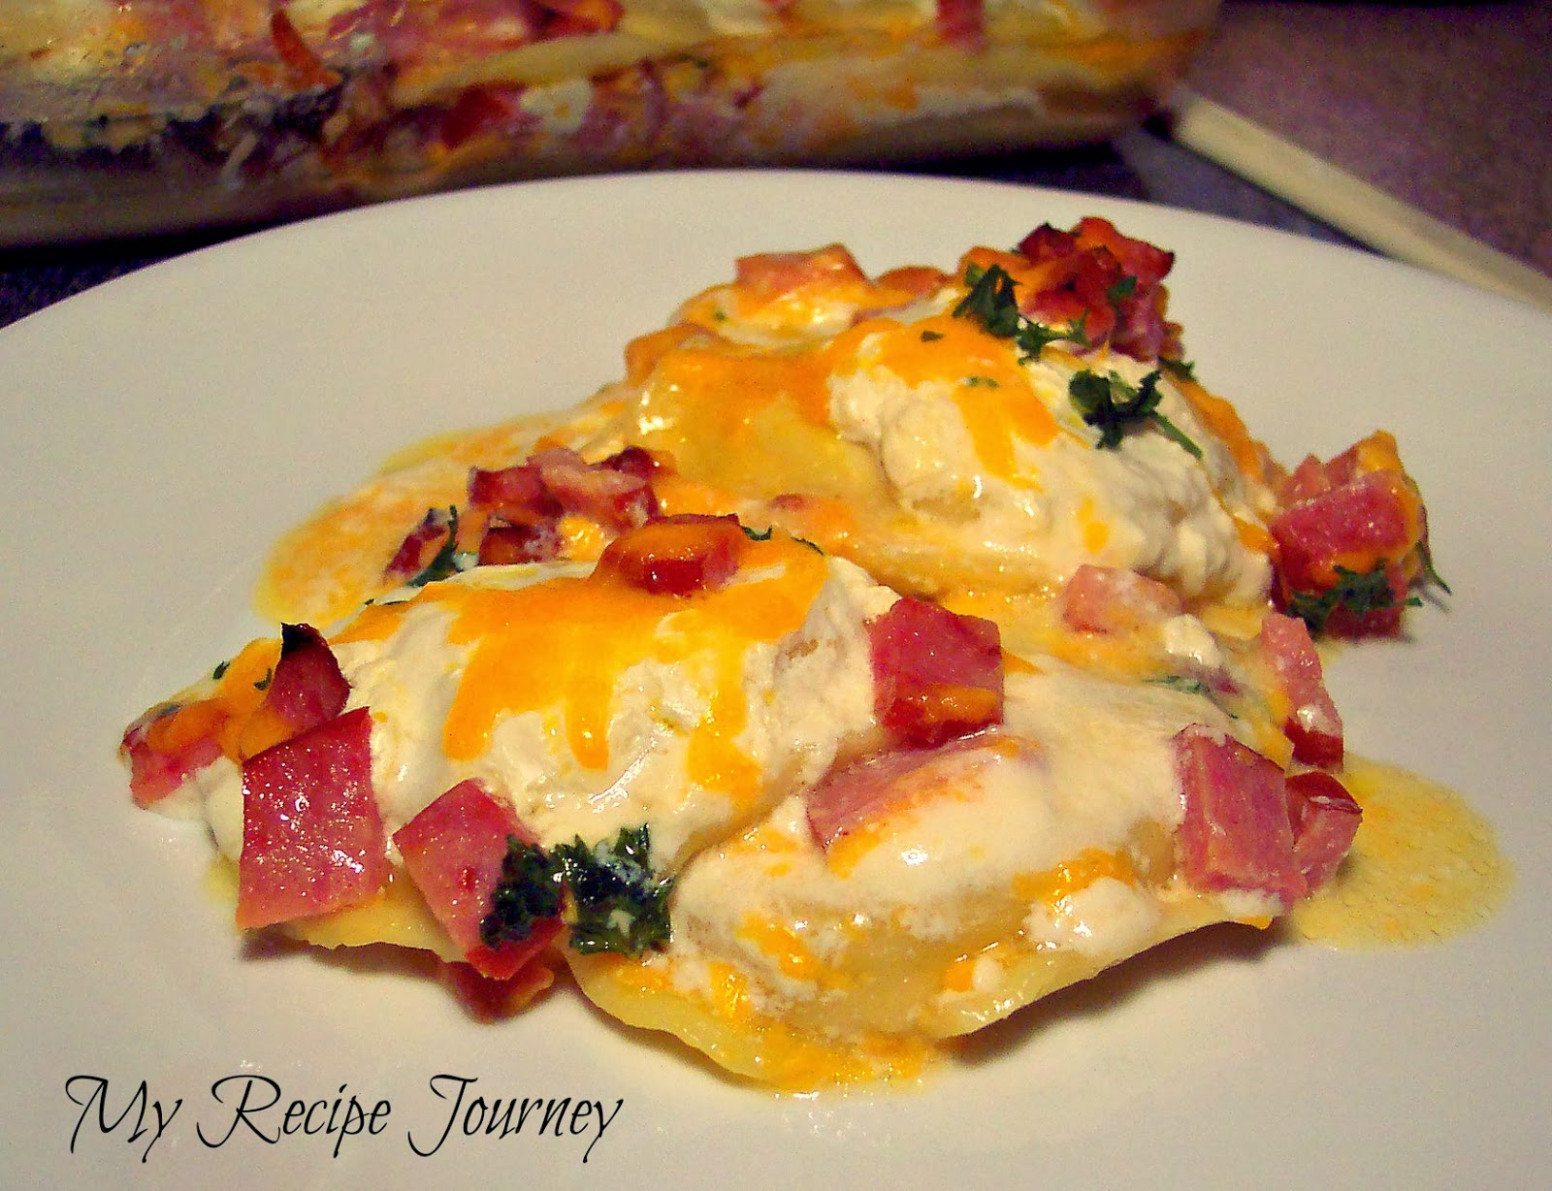 My Recipe Journey: Pierogi Kielbasa Casserole